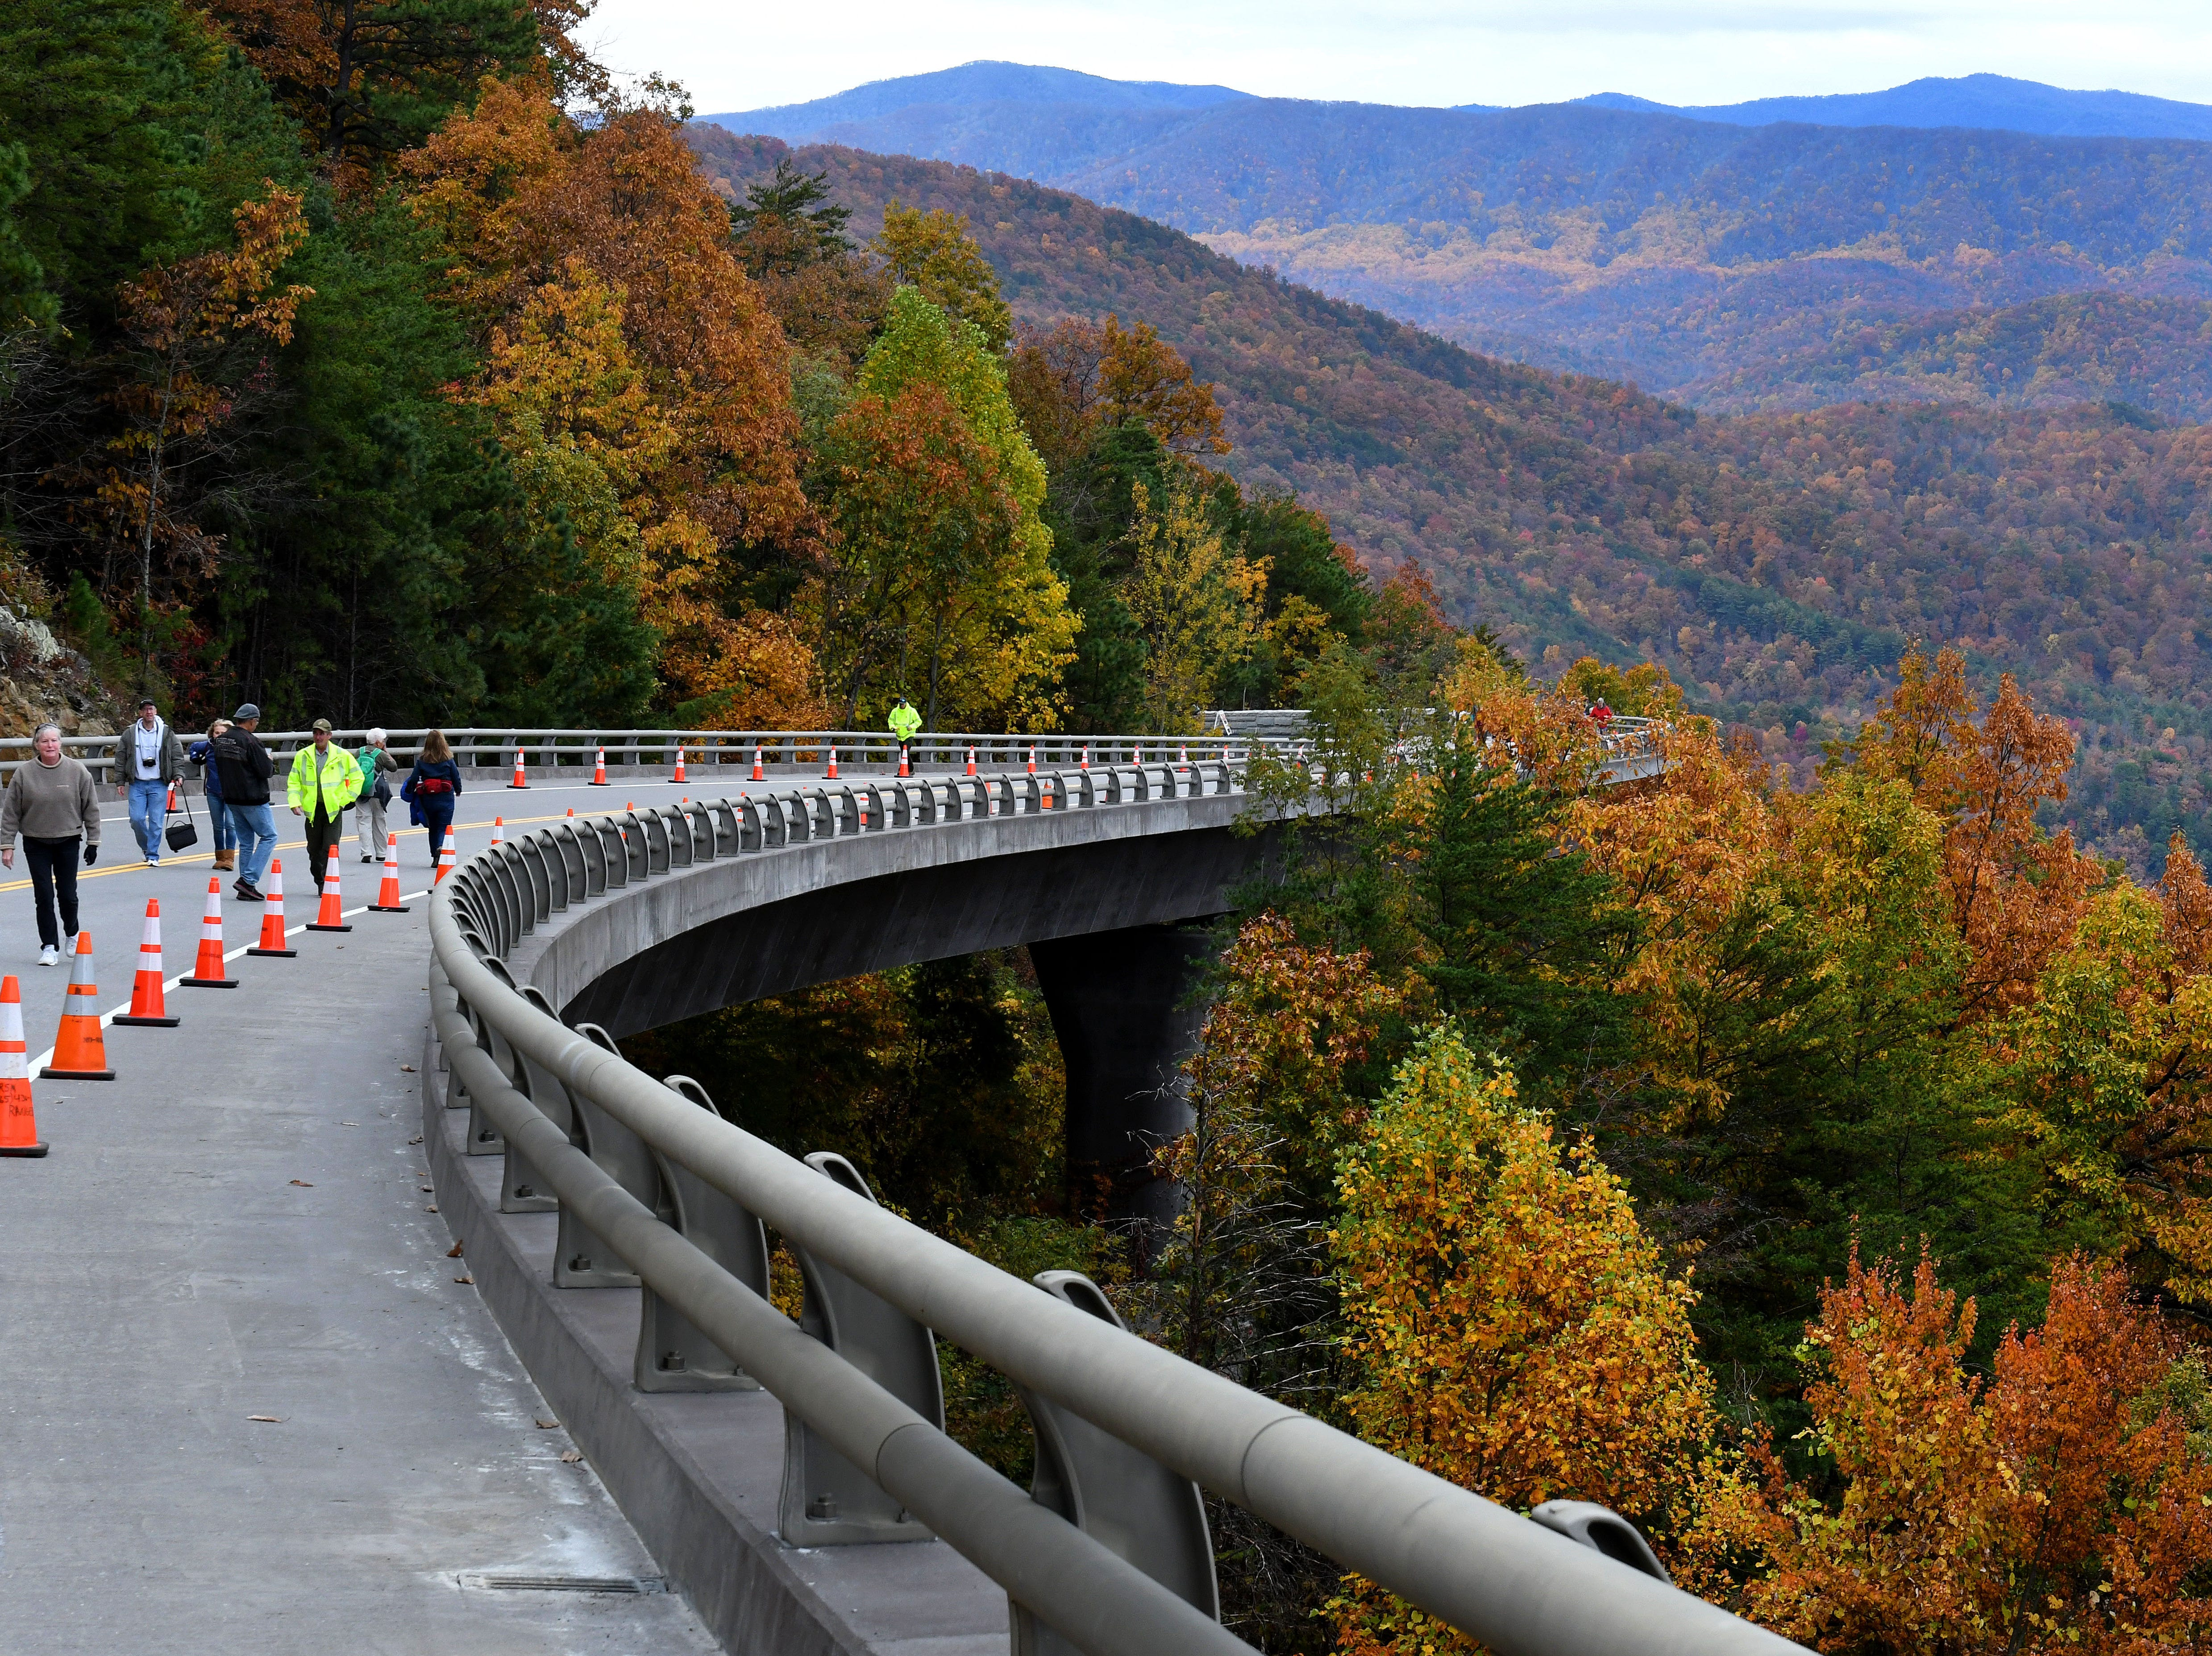 Visitors enjoy the National Park Service Community Day Thursday, Nov. 8, 2018 for the public to experience the bridges along the 1.65-mile section known as the 'Missing Link' before it opens to motorists and cyclists Saturday.